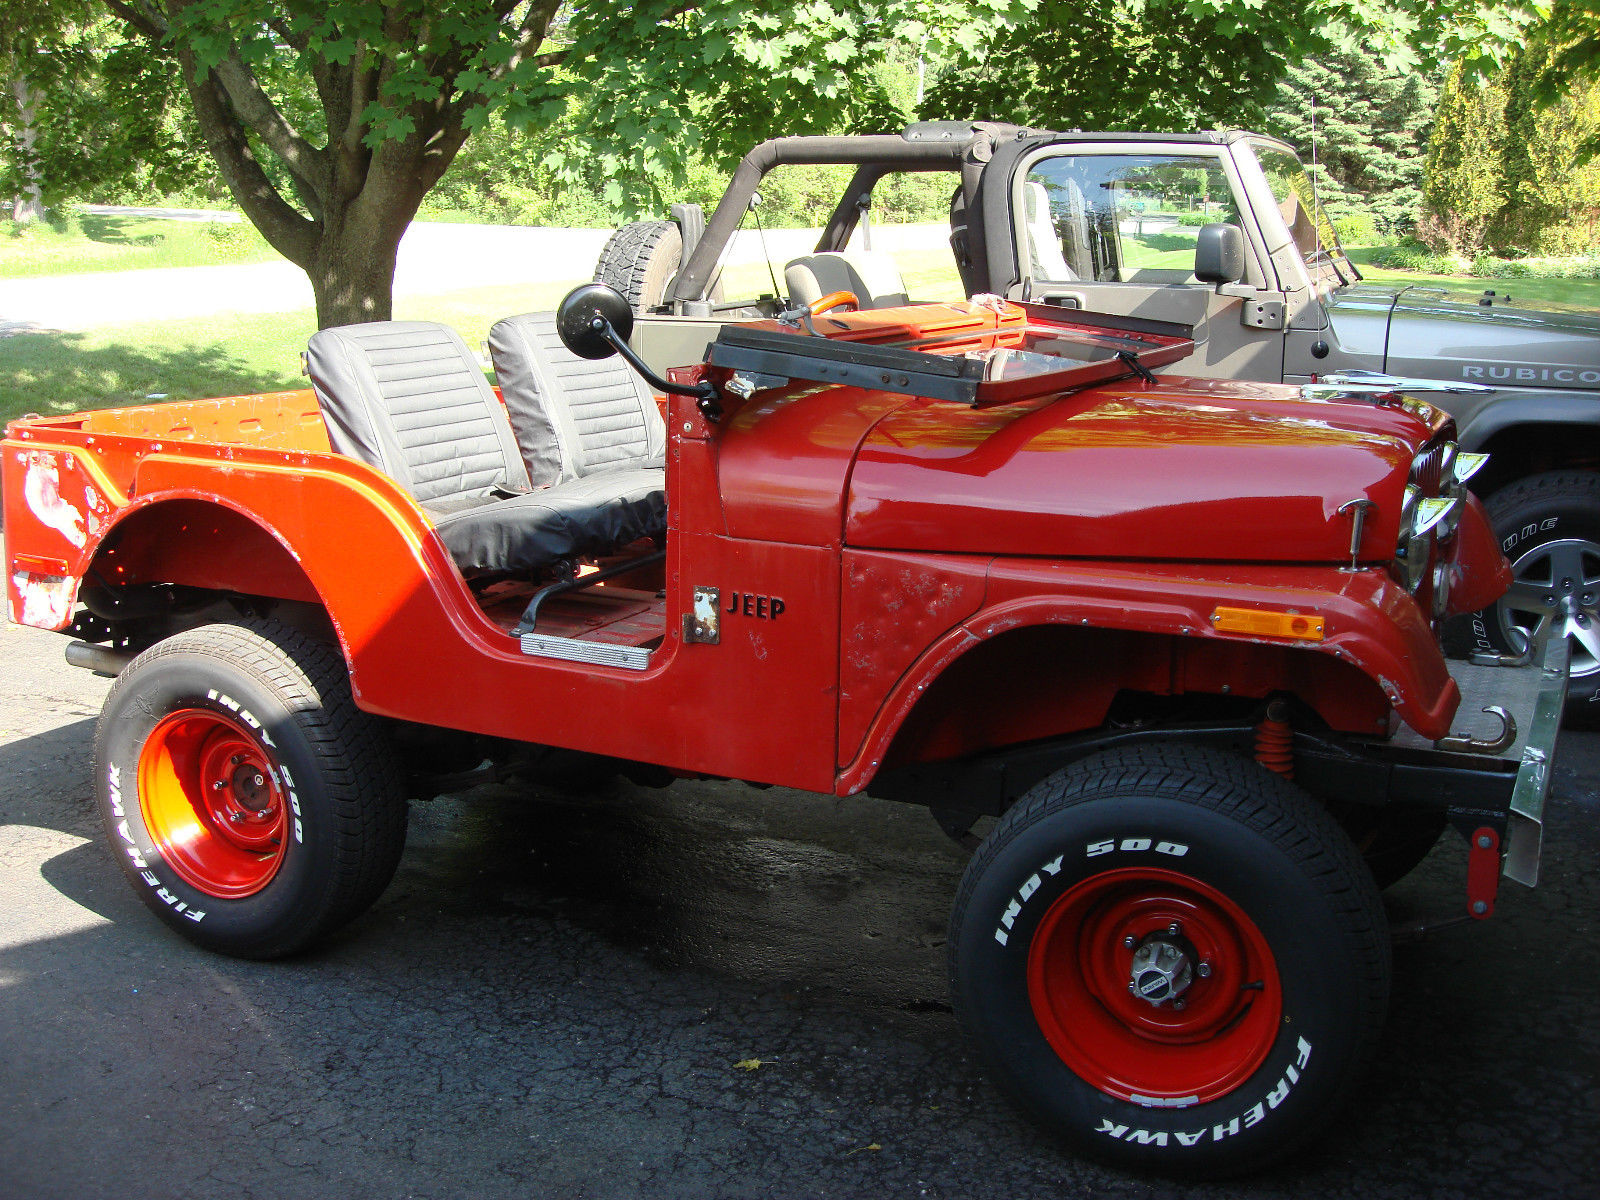 1971 jeep cj5 hotrod ratrod 302v8 auto 4x4 with factory hardtop classic jeep cj 1971 for sale. Black Bedroom Furniture Sets. Home Design Ideas